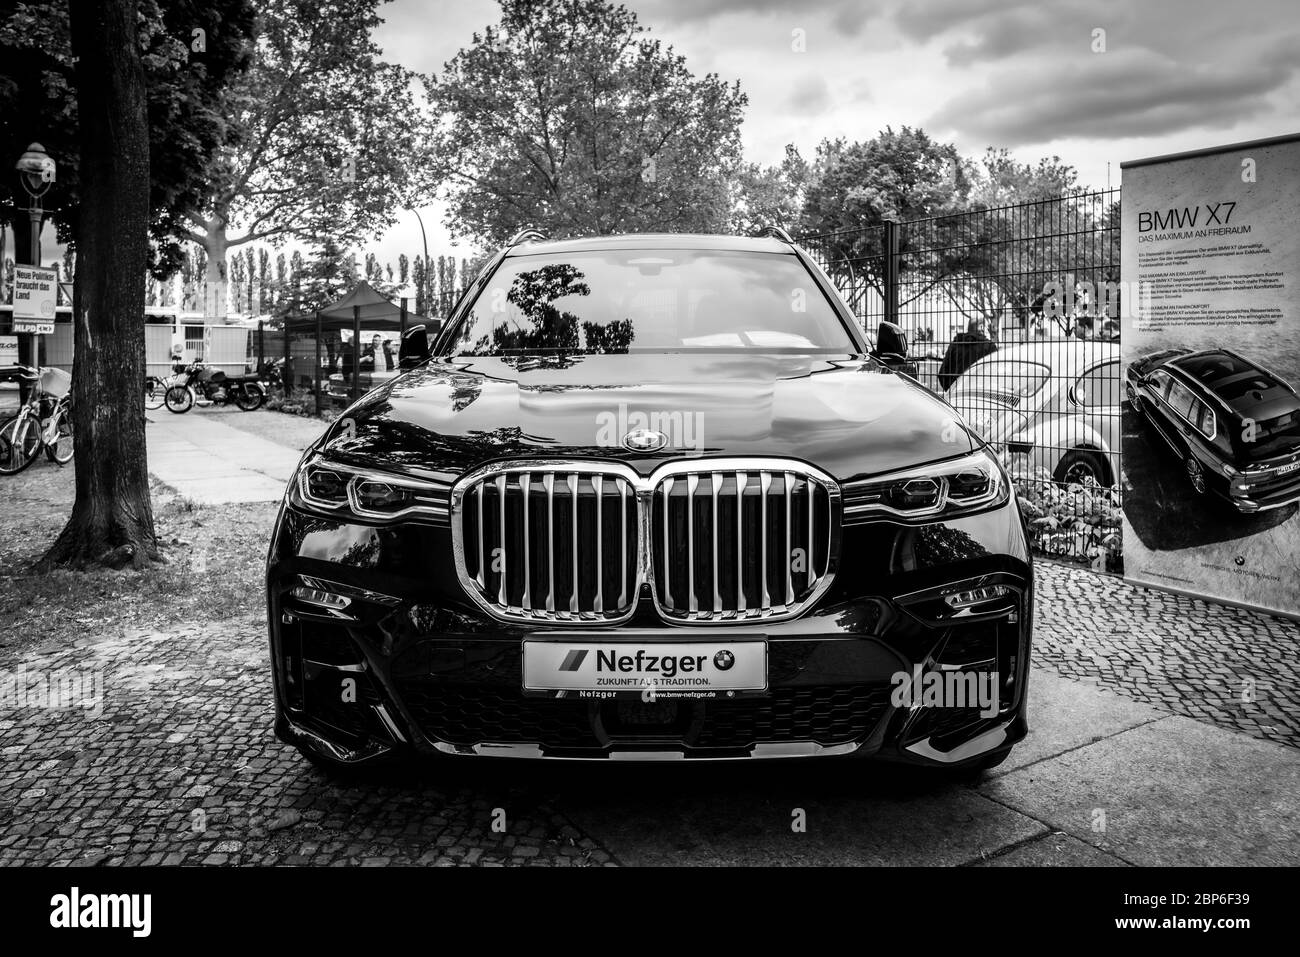 Black Bmw Suv High Resolution Stock Photography And Images Alamy